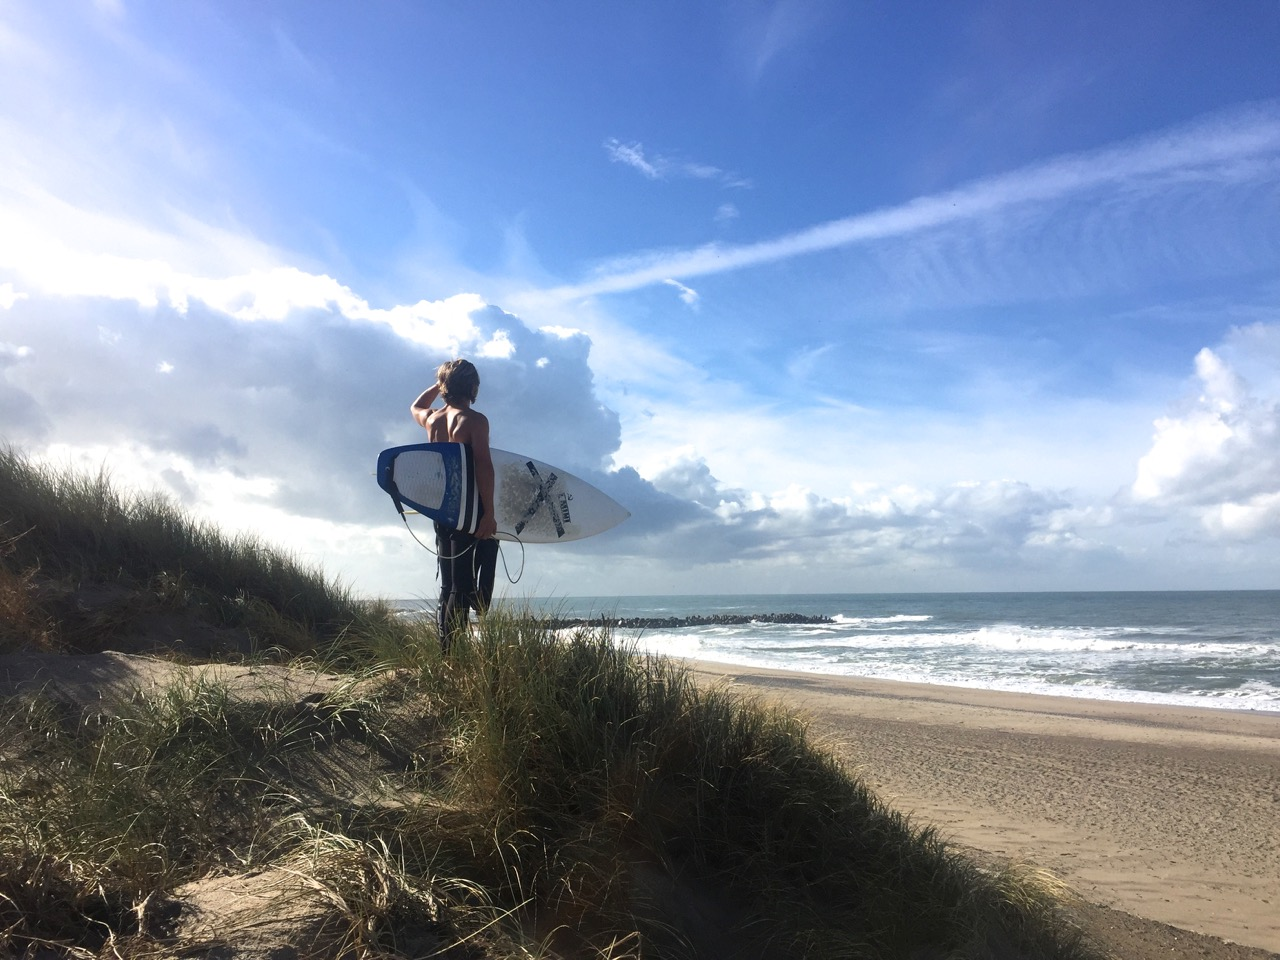 Leon at Agger Beach before a 2 hour surf in the beautiful Danish OCTOBER weather